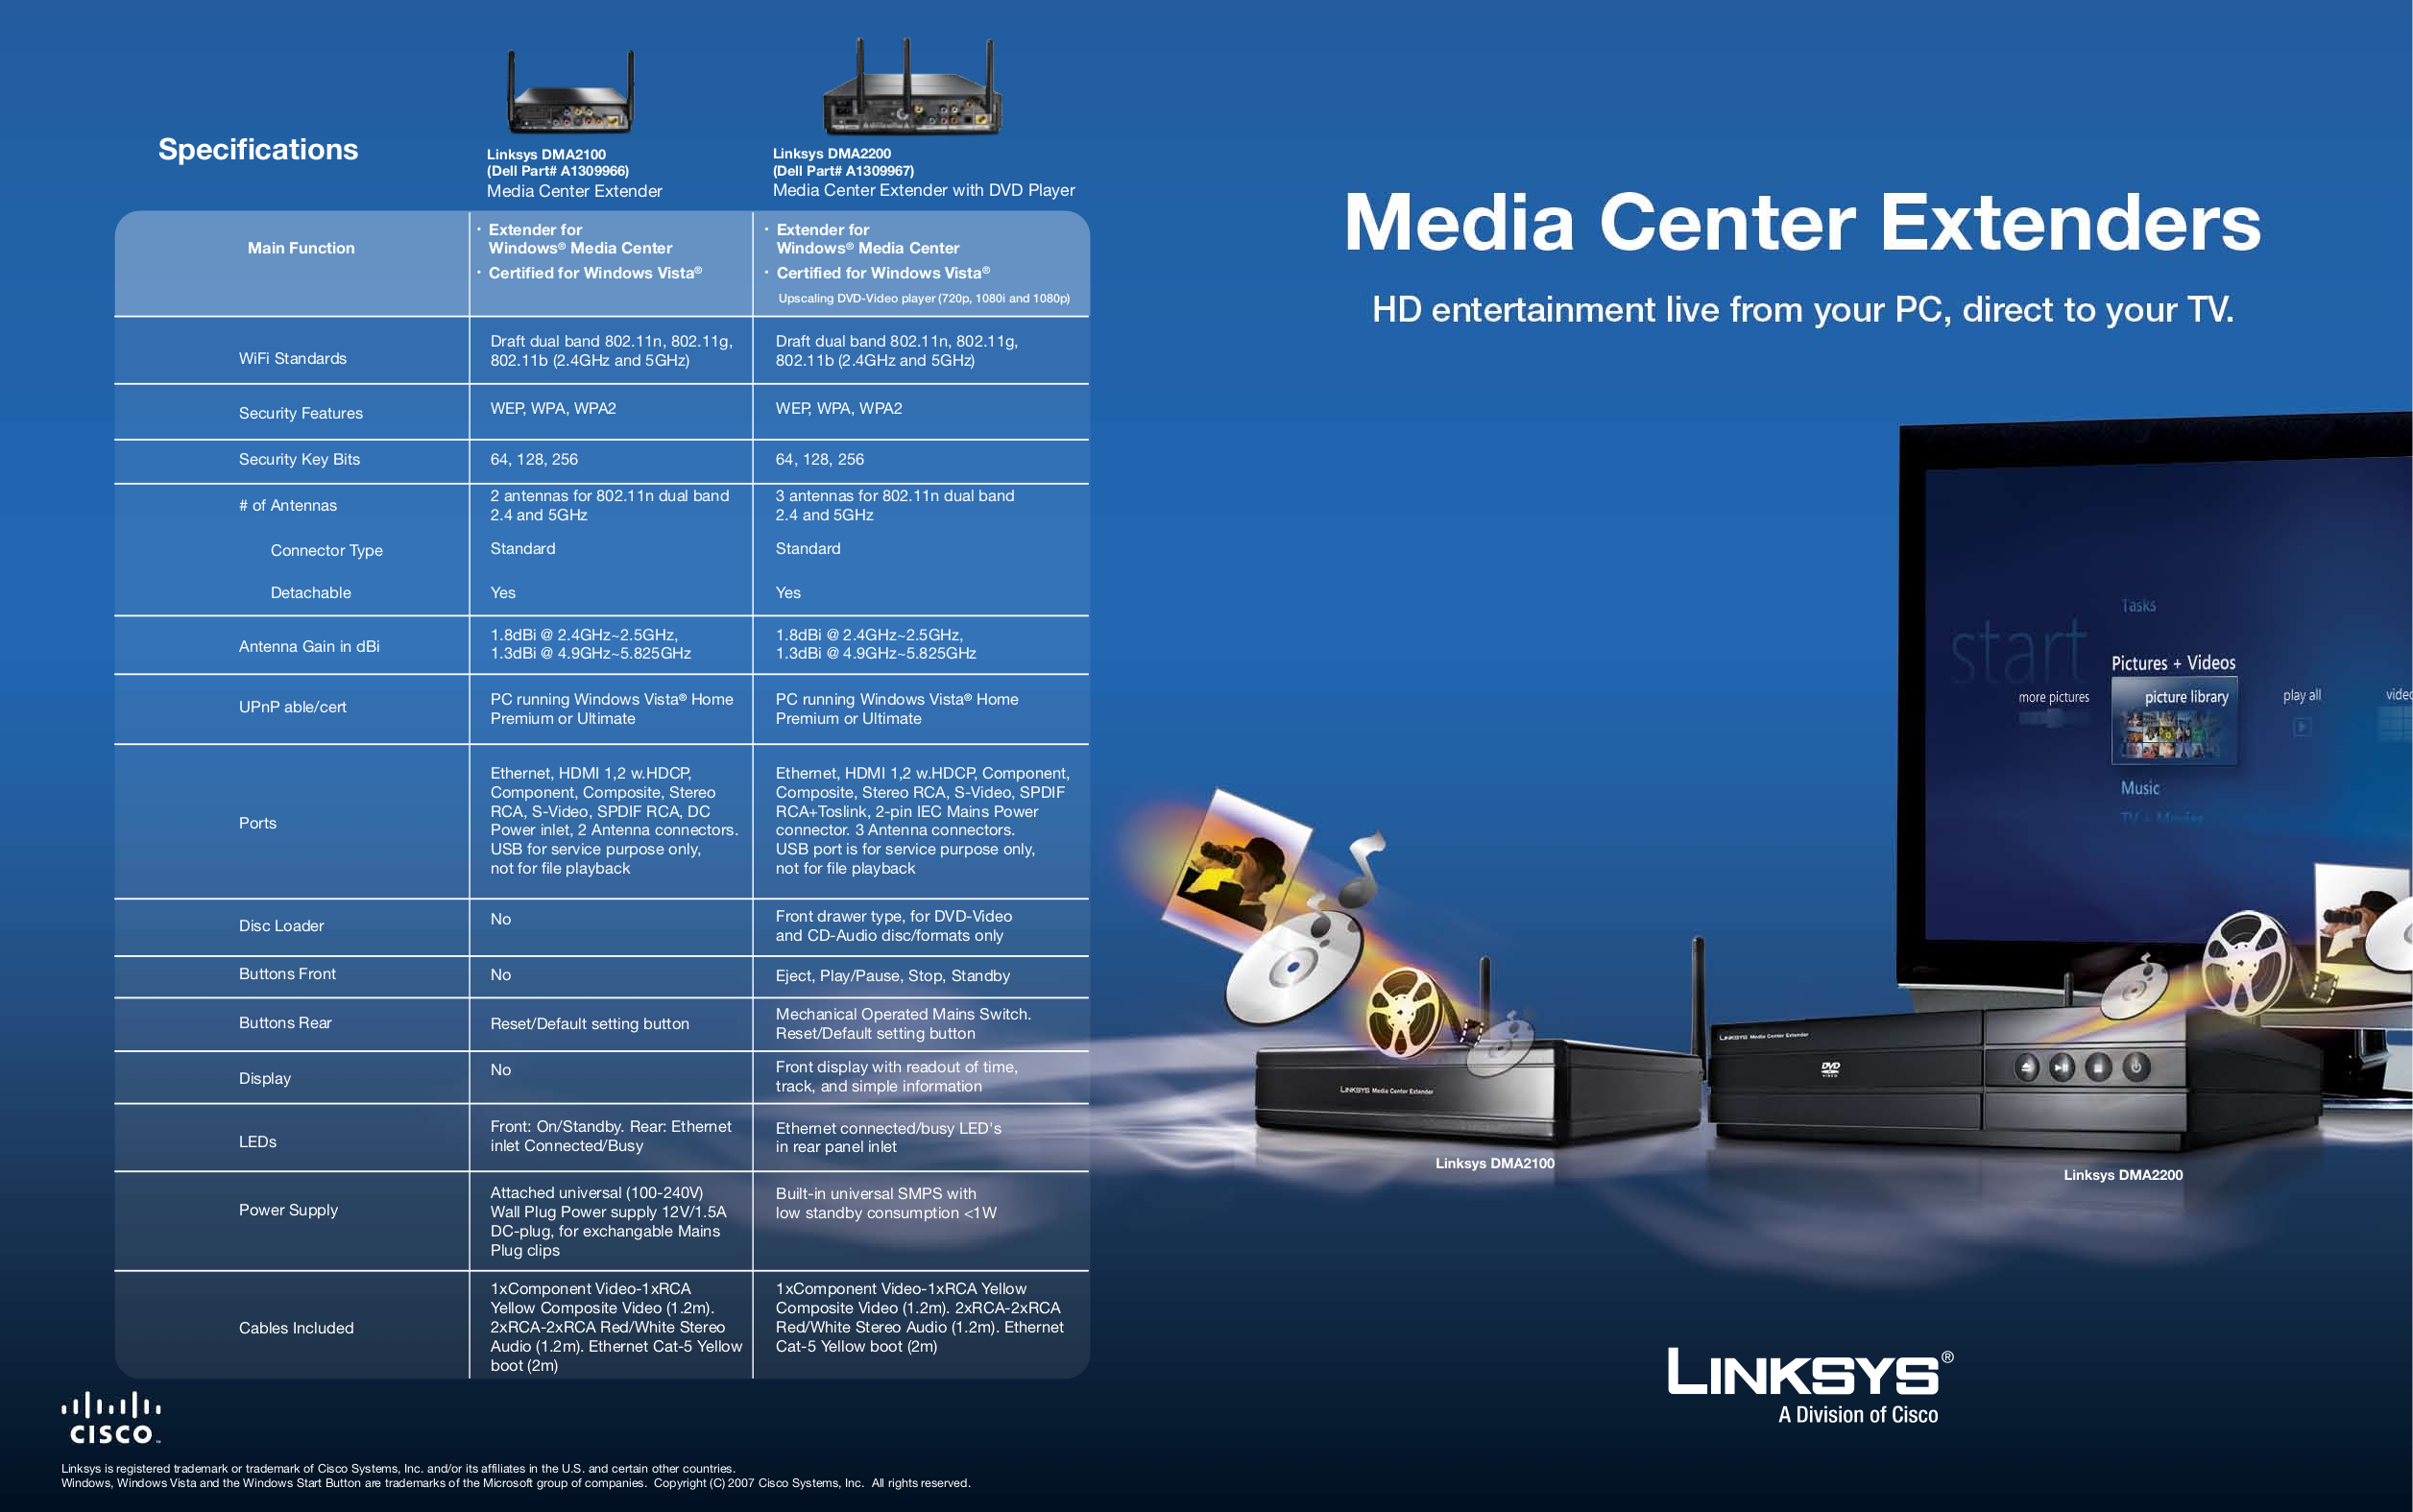 Linksys dma 2100 media center extender review   trusted reviews.